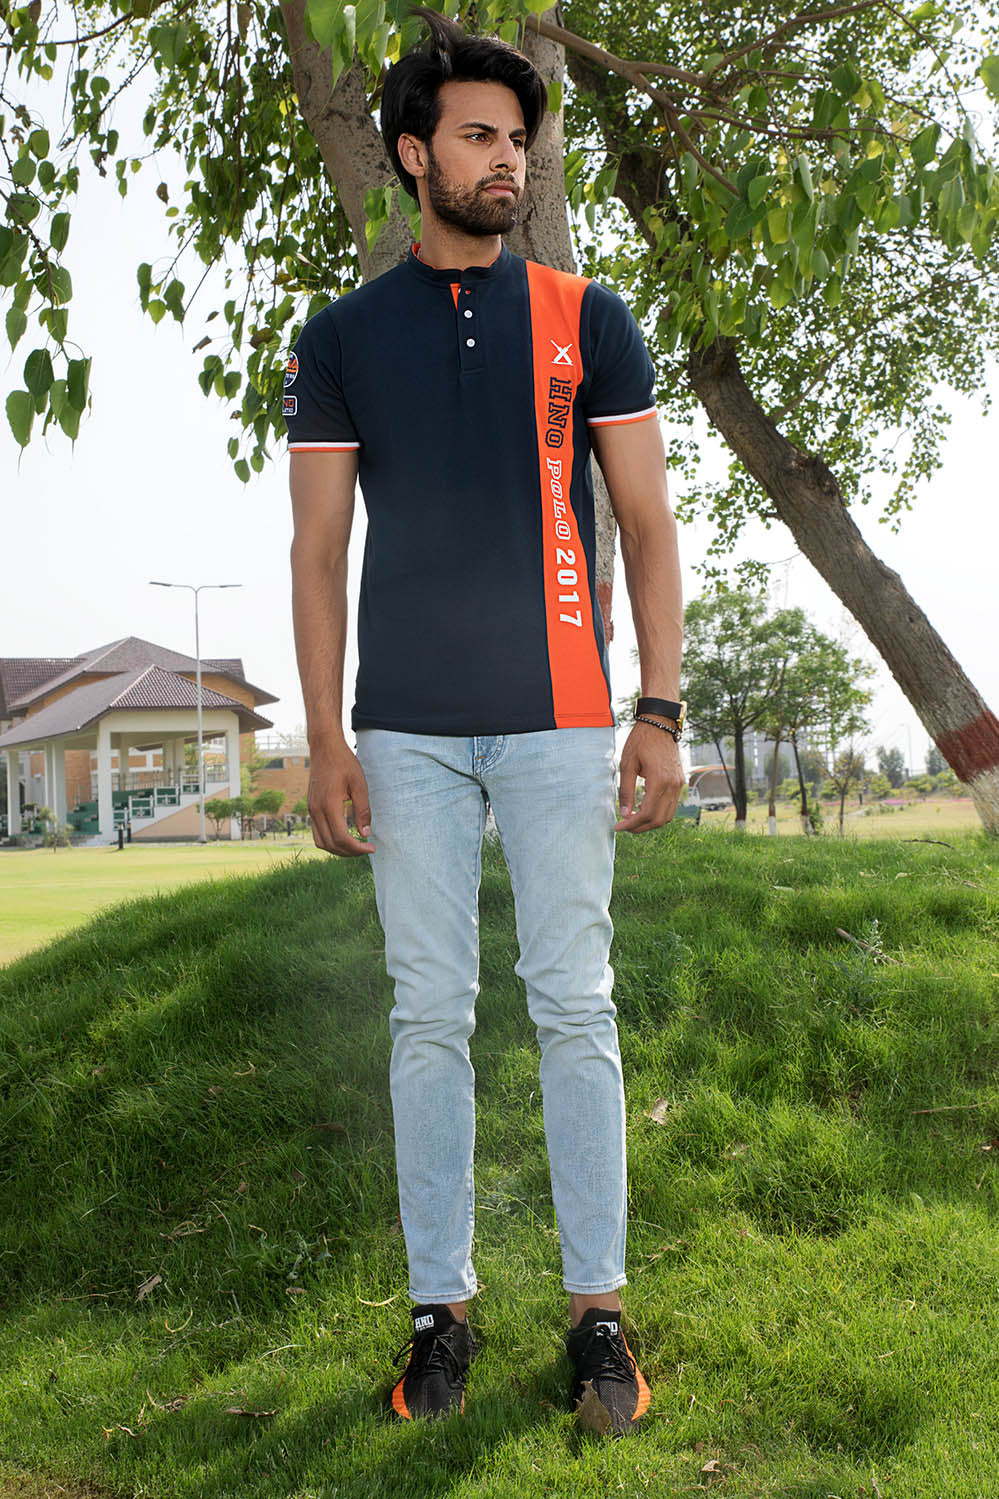 Colour Blocking Ban Polo with embroidery details - HOPE NOT OUT